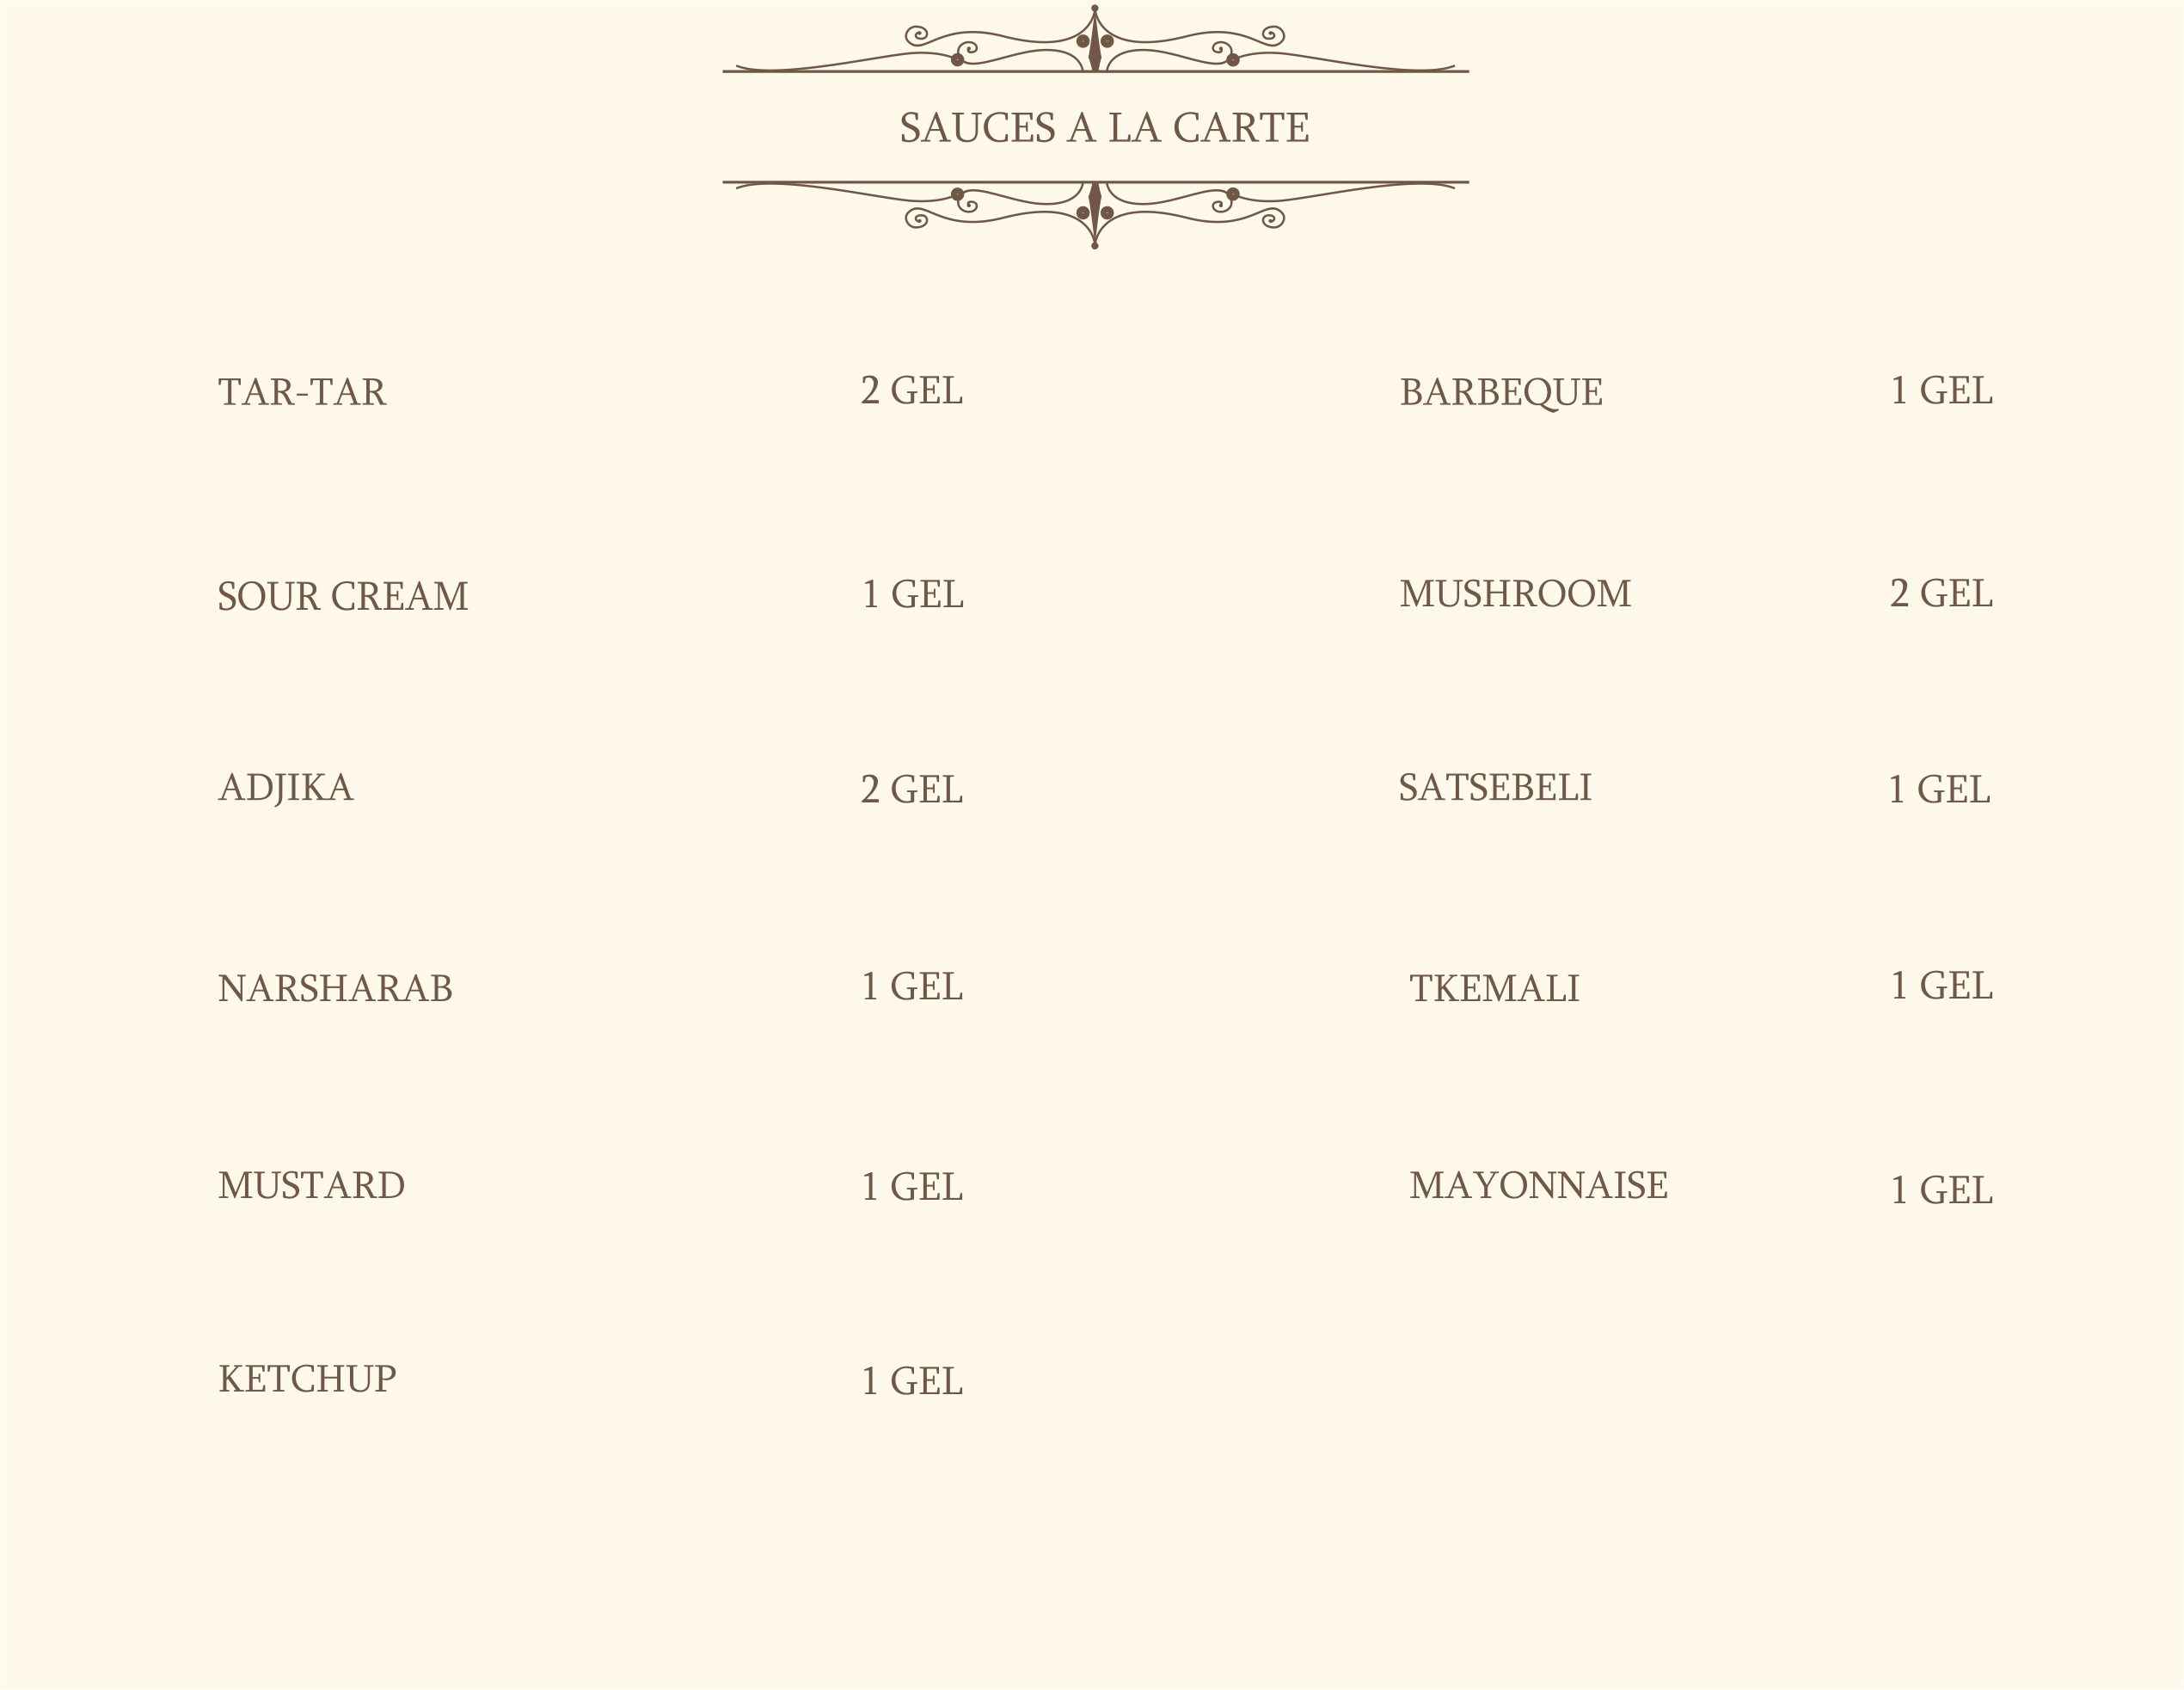 SL Casino Bar Menu, Page 4